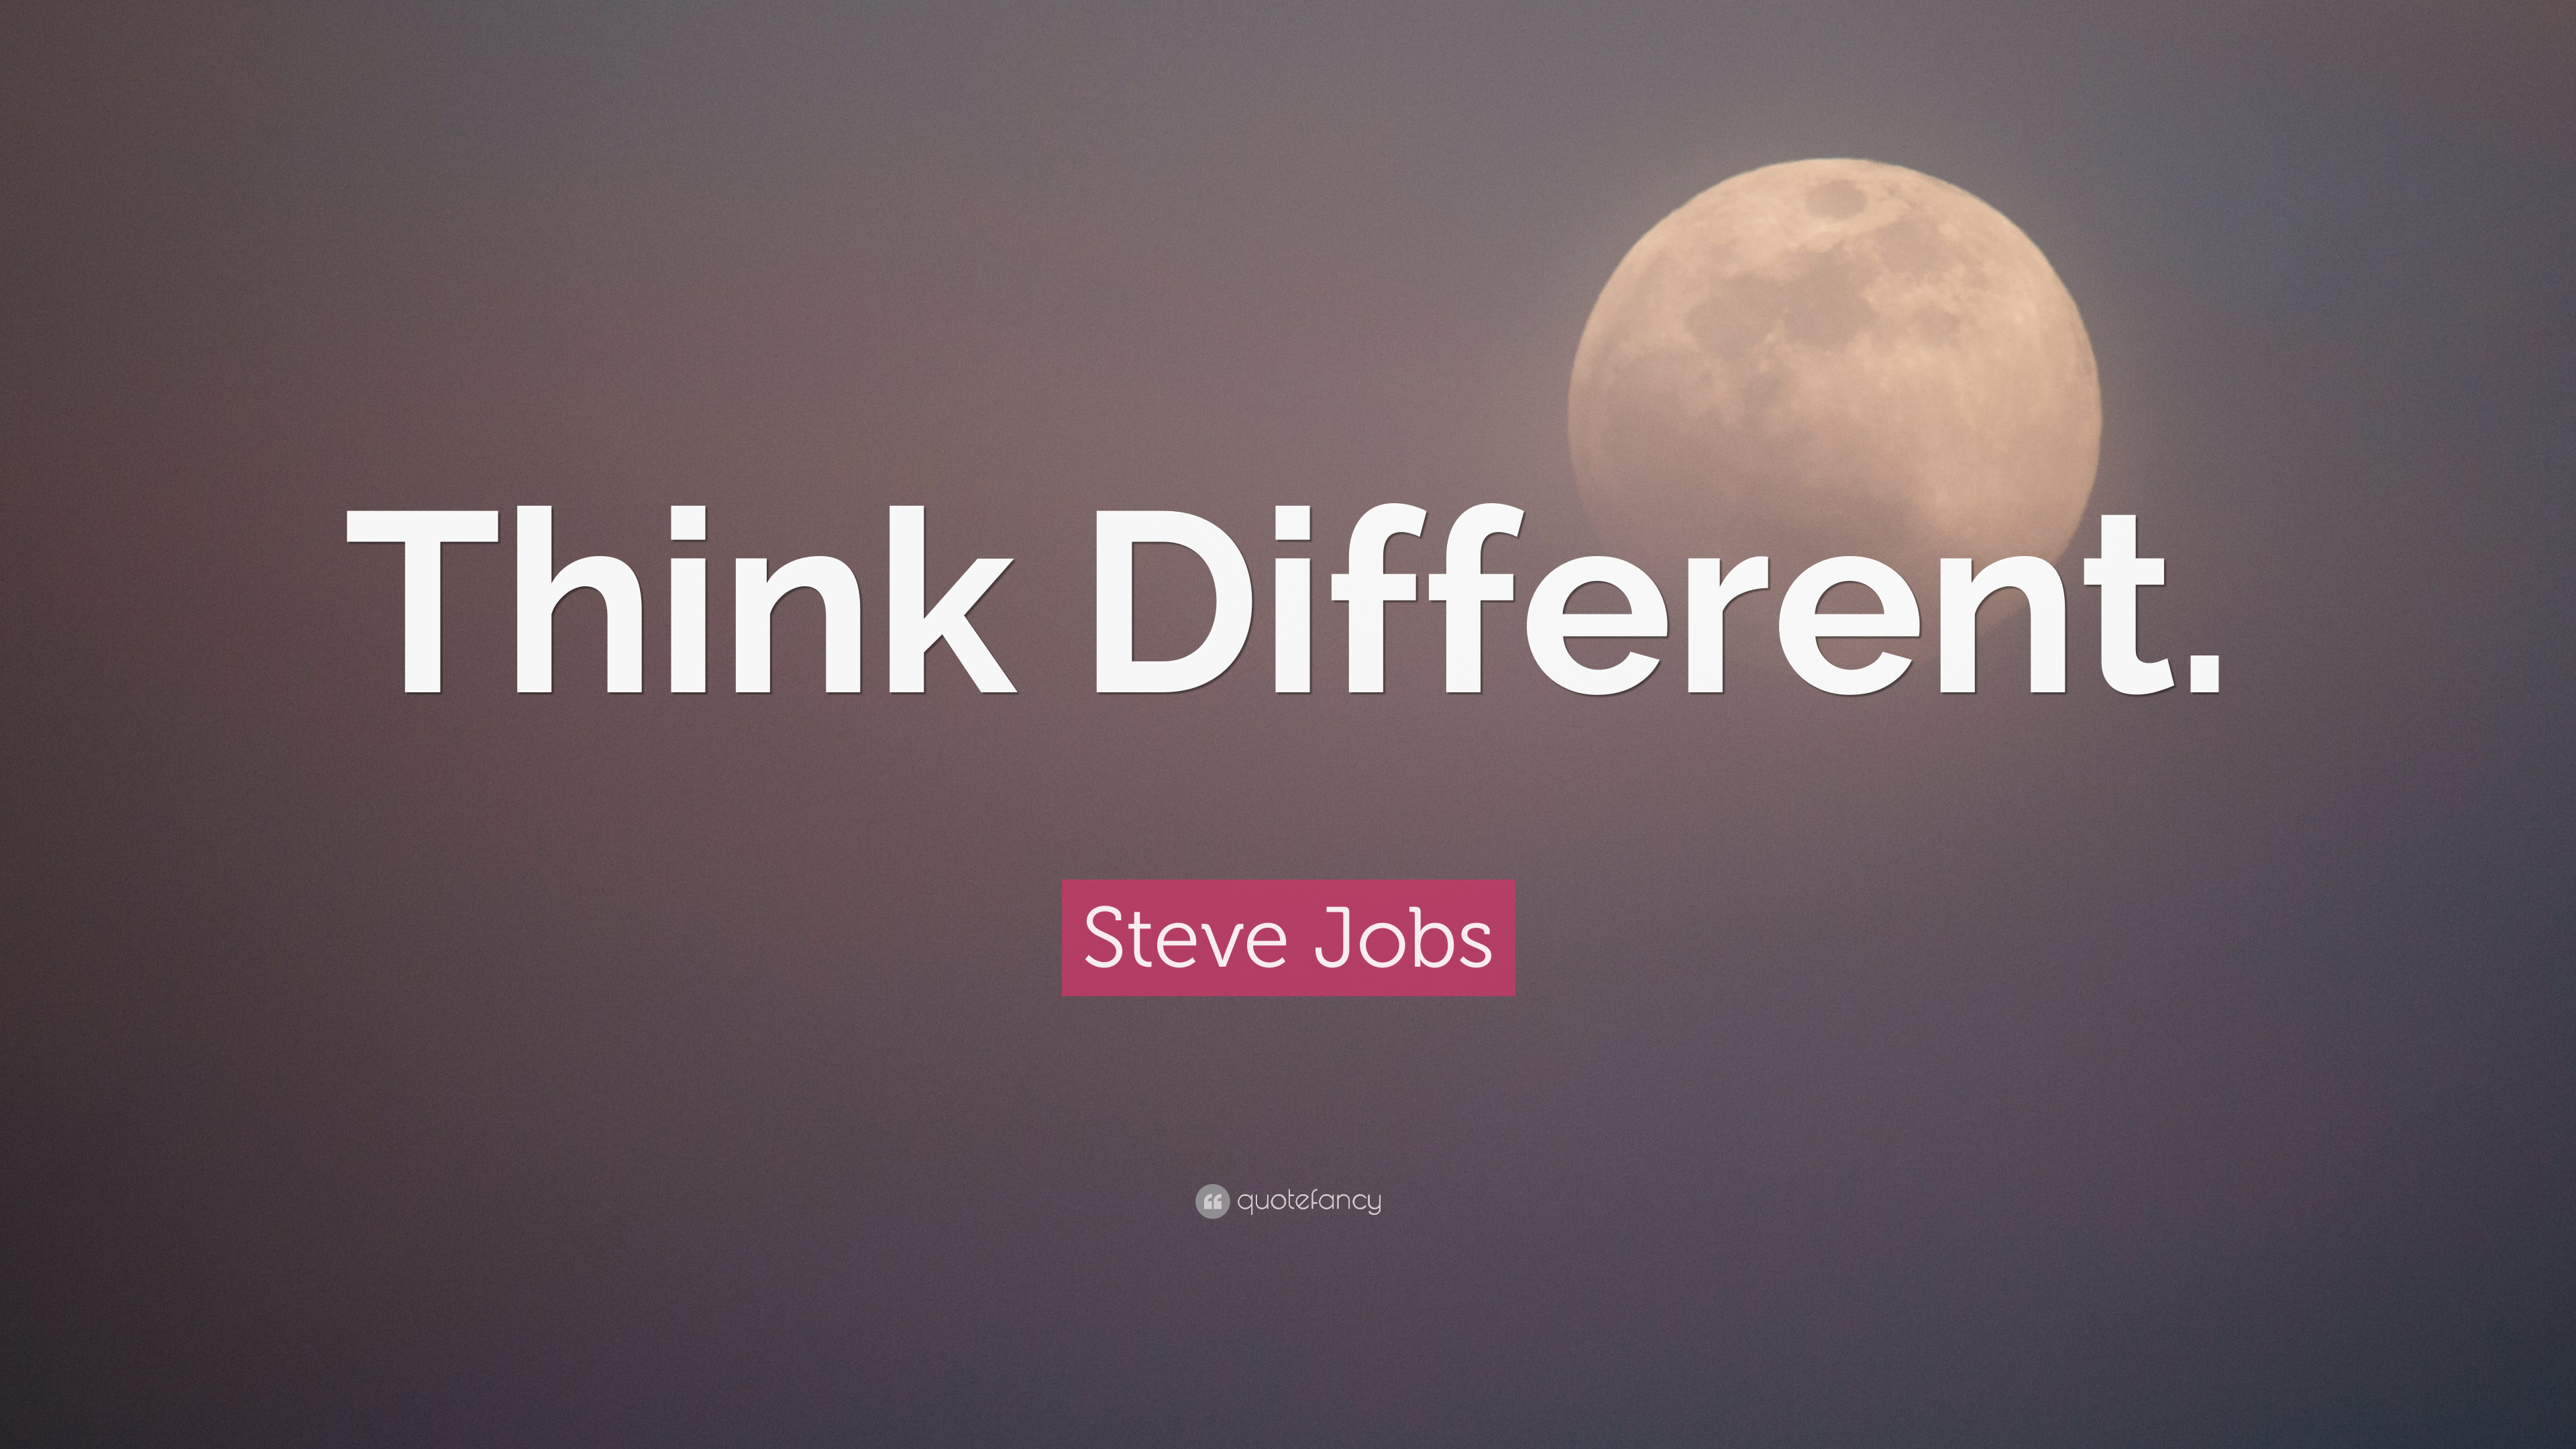 """a787516d5c5 Steve Jobs Quote: """"Think Different."""" (21 wallpapers) - Quotefancy"""